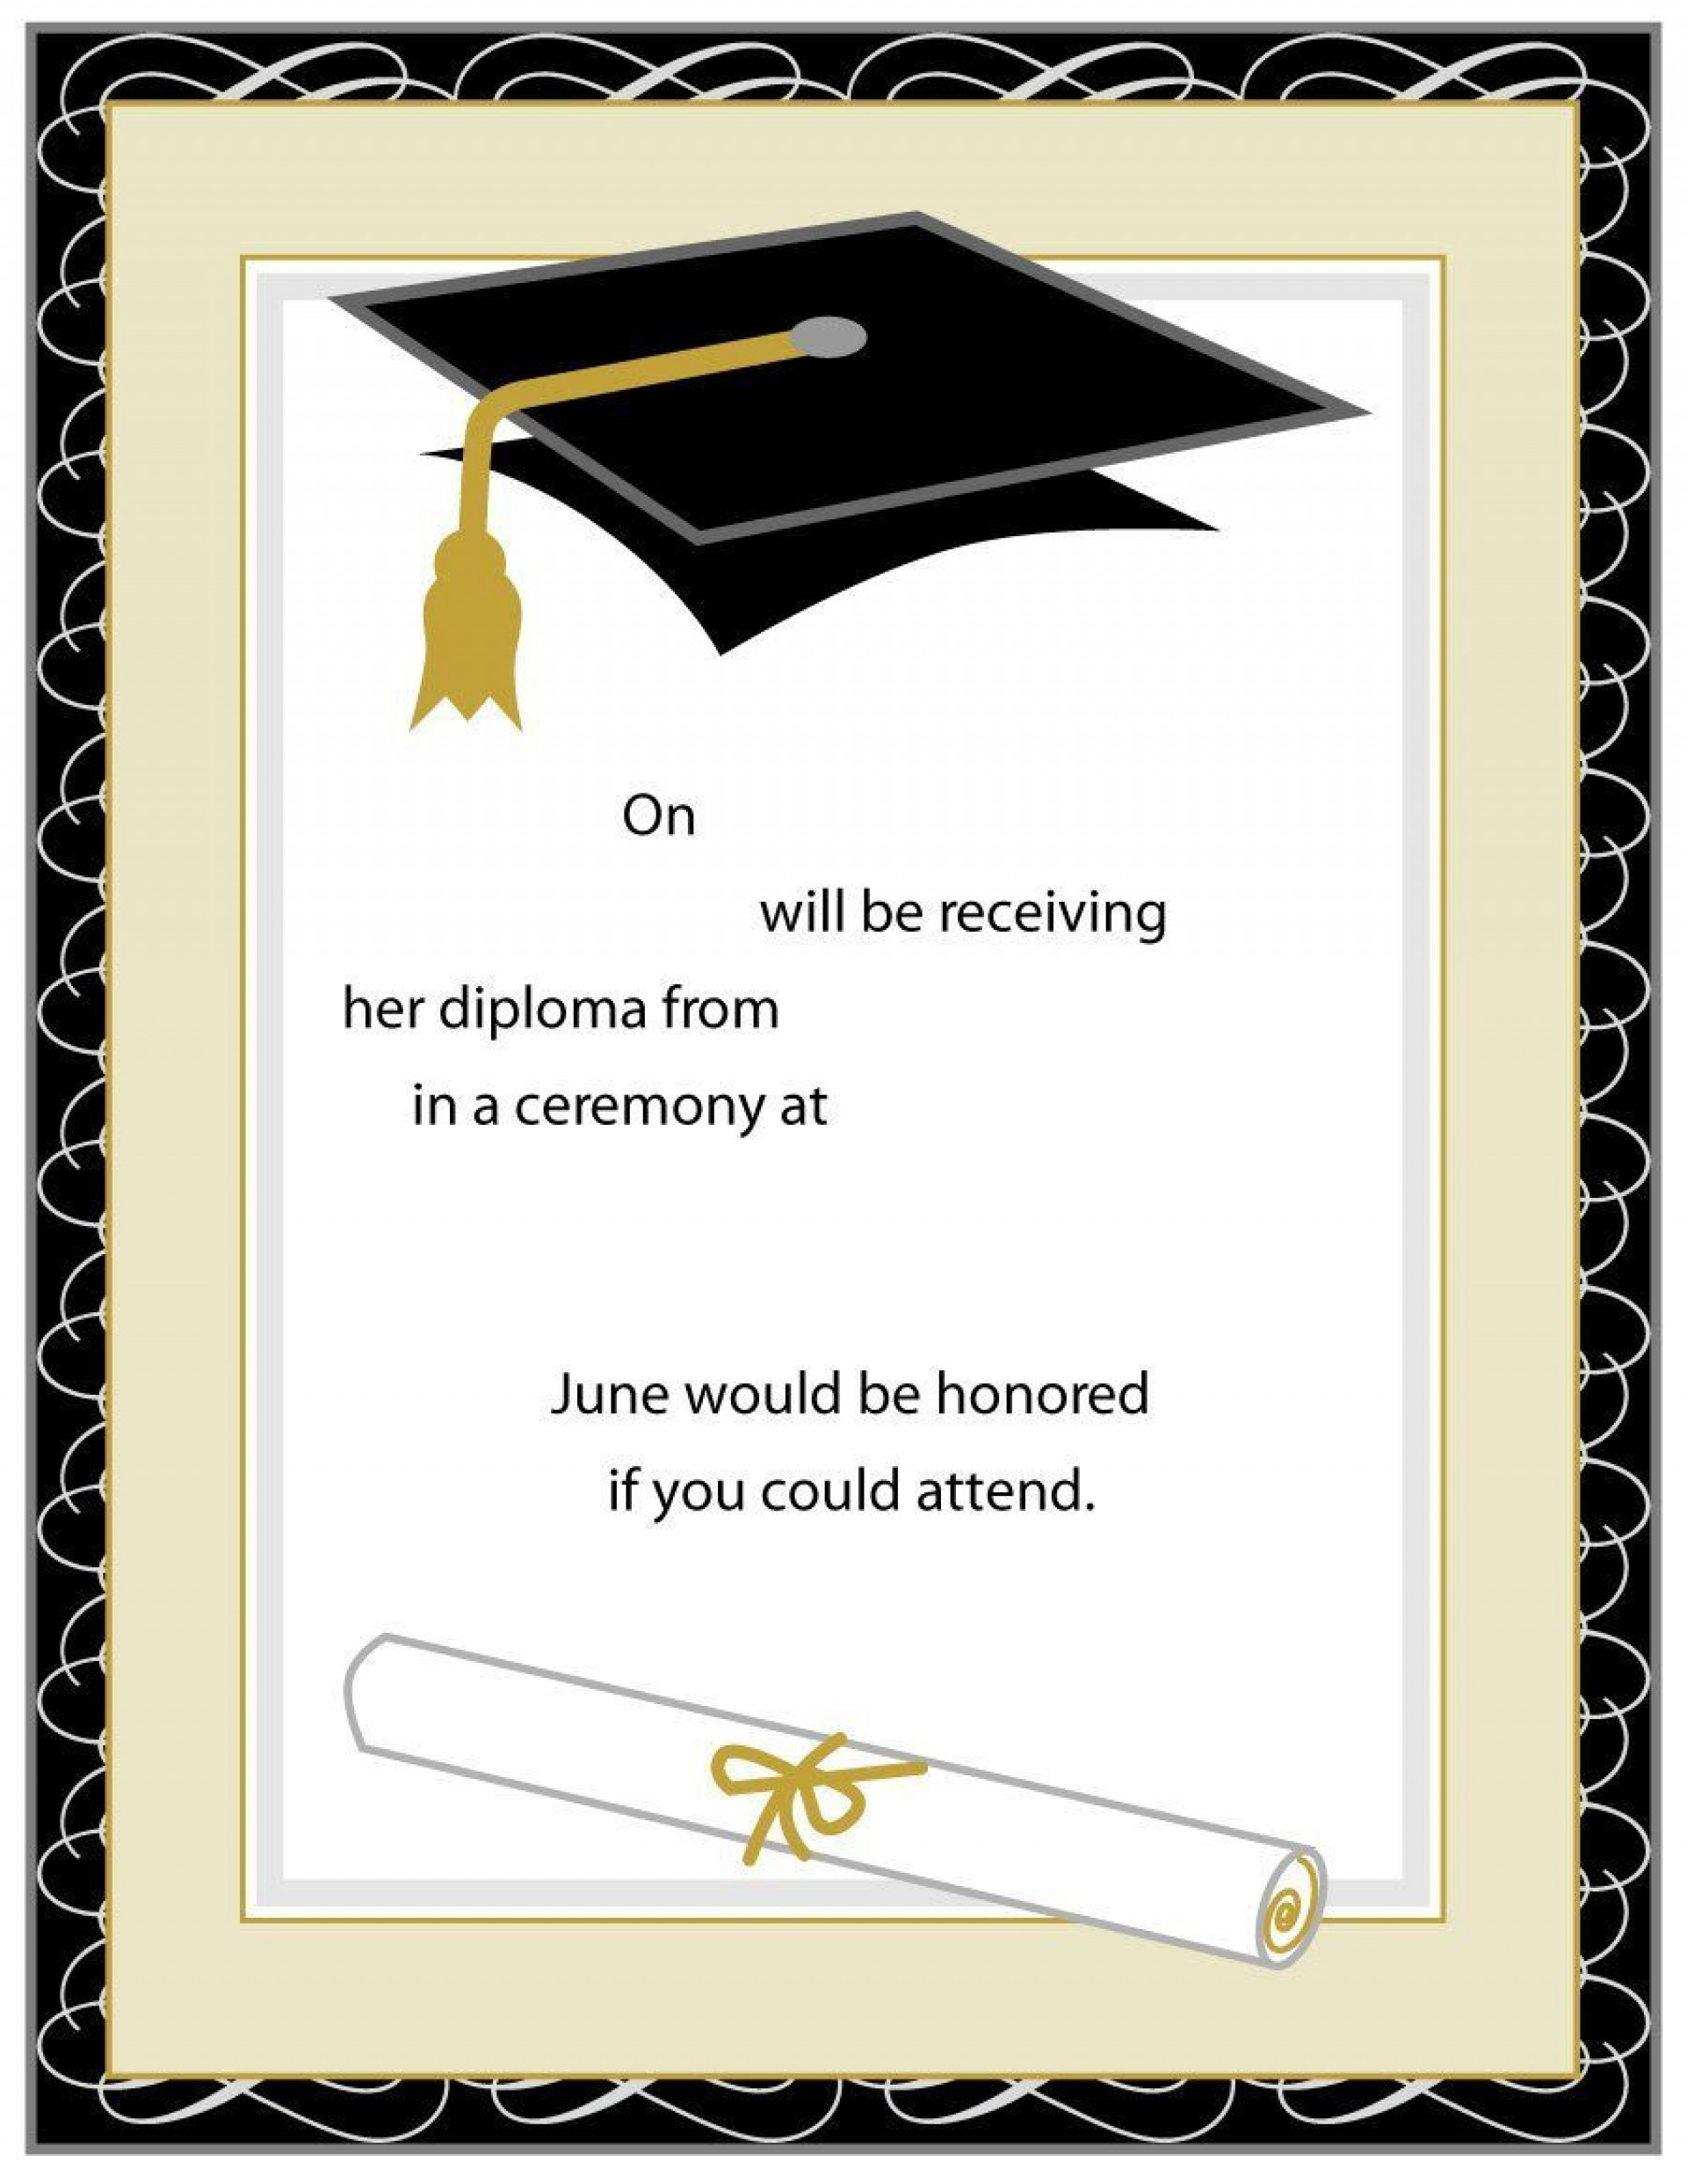 001 Unforgettable Microsoft Word Graduation Invitation Template Highest Quality  Party1920